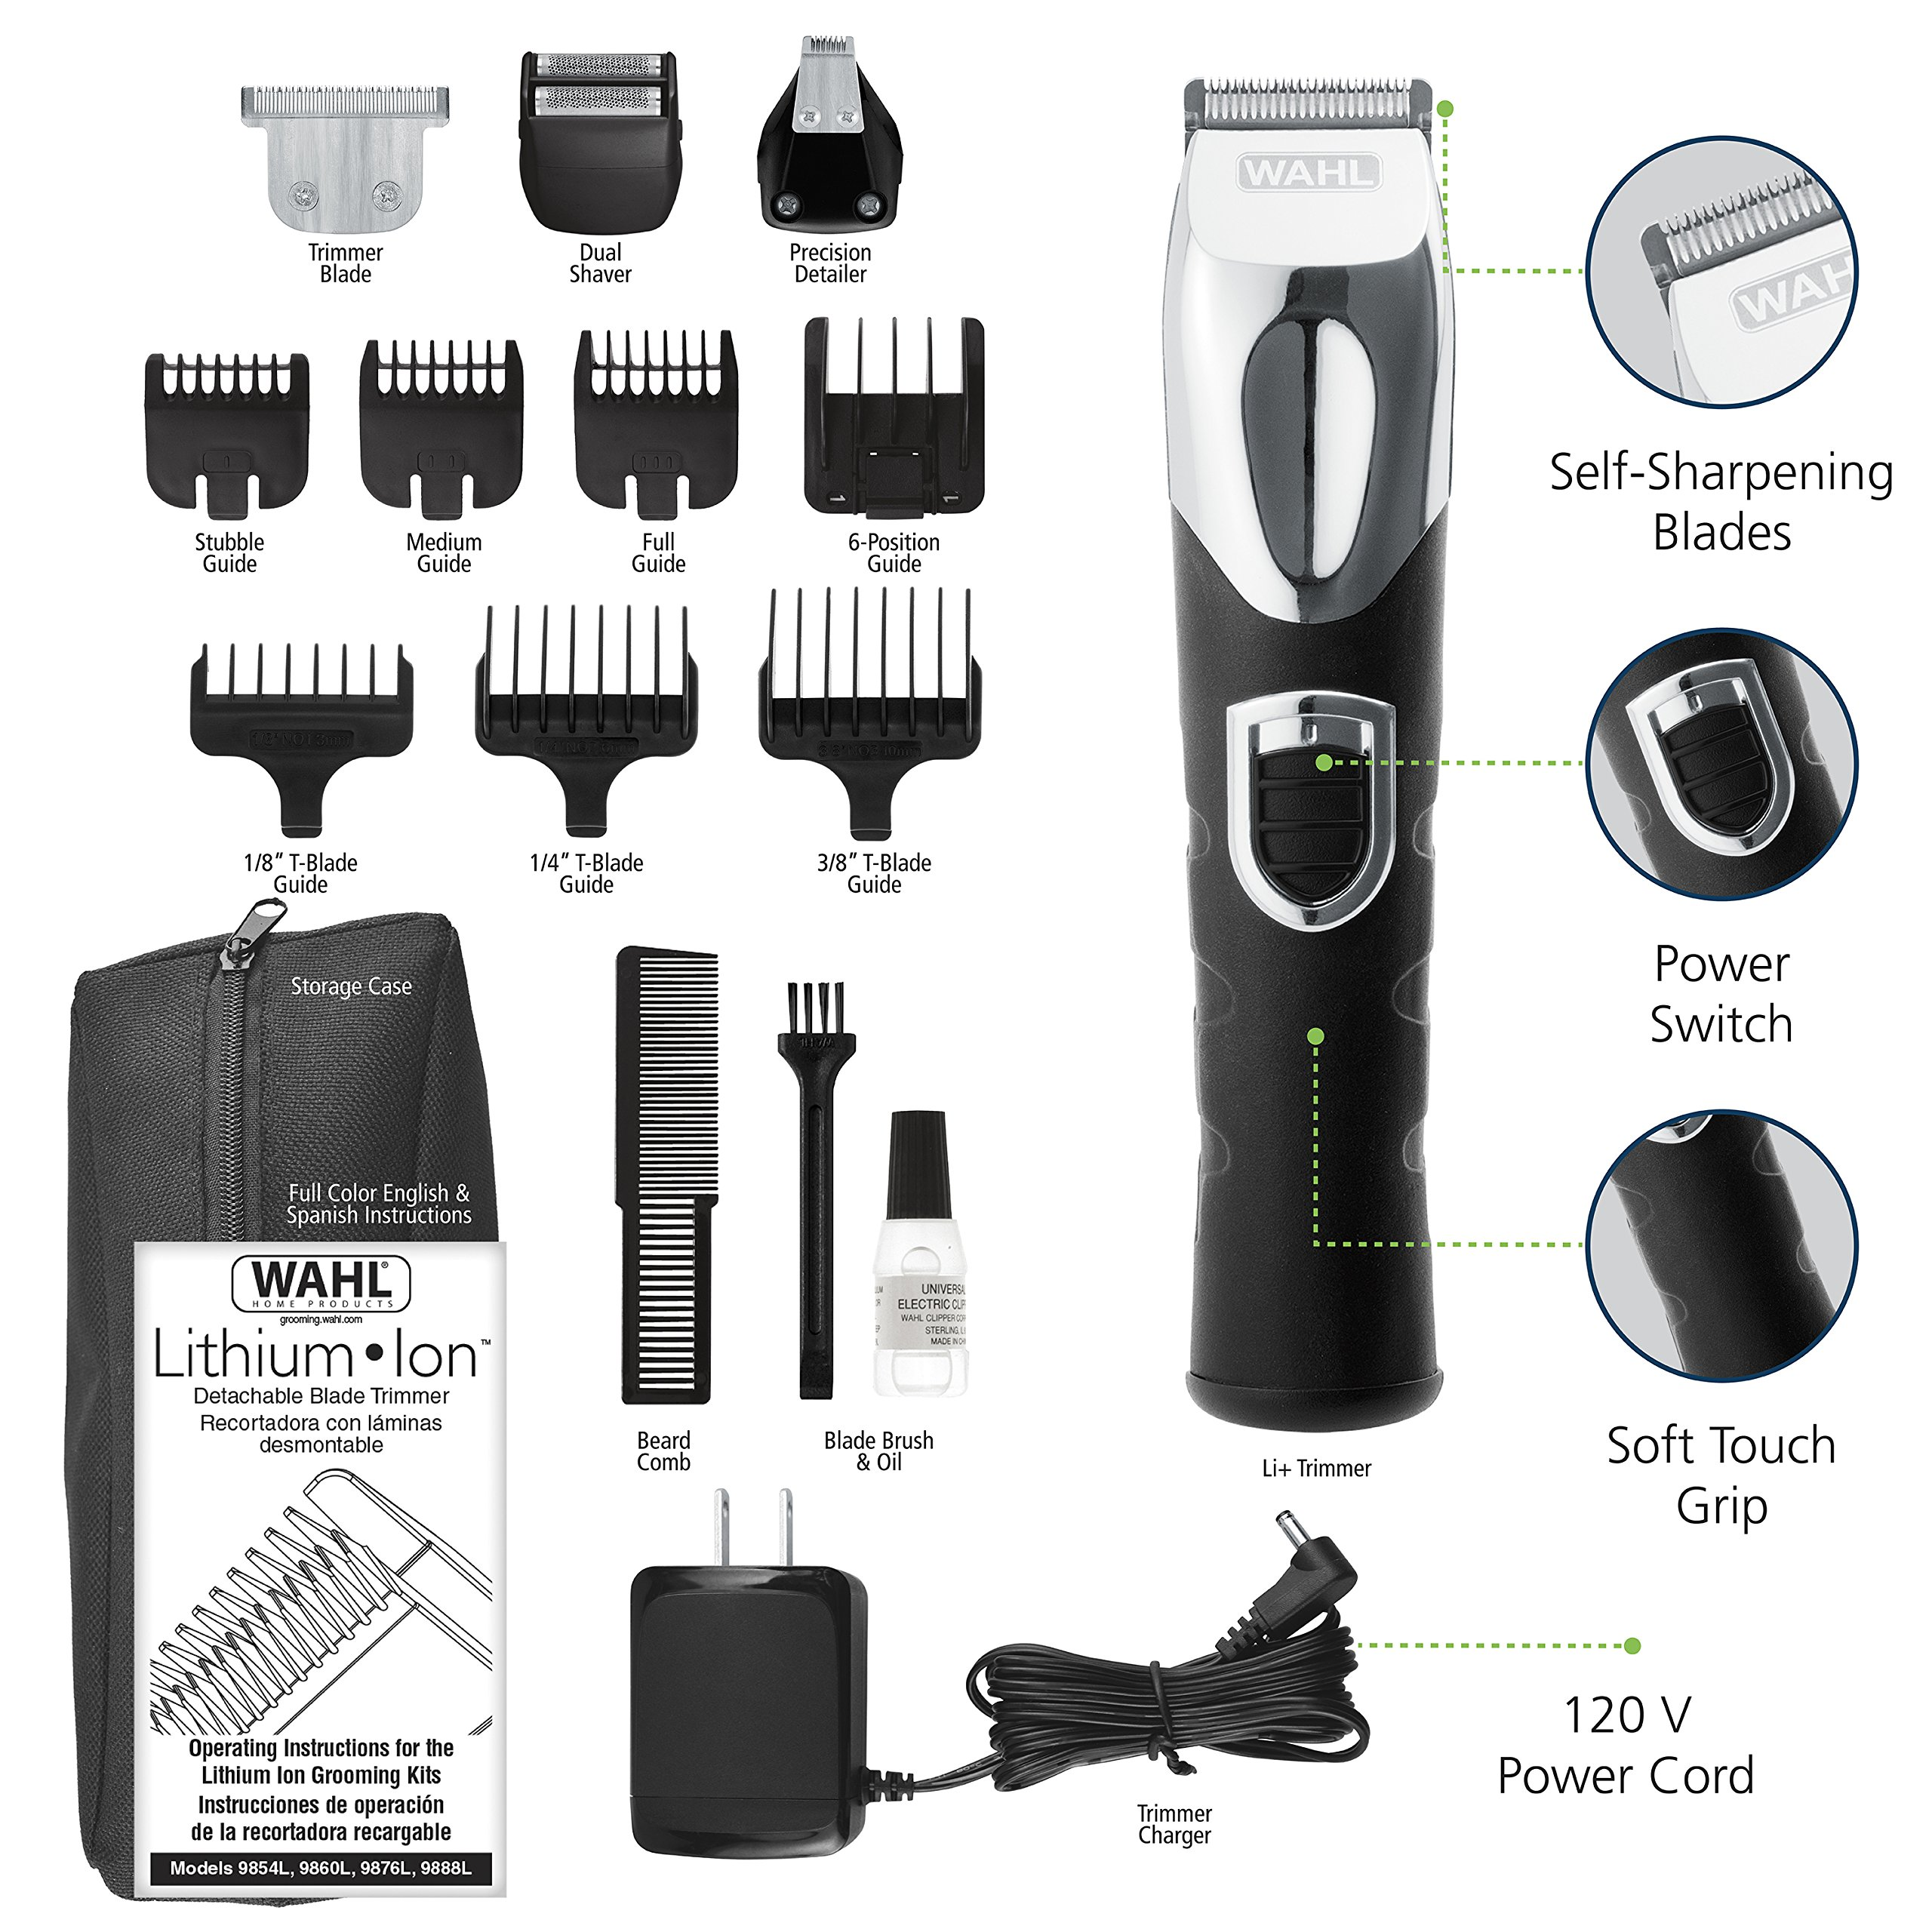 Wahl Beard Trimmer, Lithium Ion All-in-One Men's Grooming Kit with Rechargeable Beard Trimmers, Hair Clippers, and Electric Shavers by the Brand Used by Professionals #9854-600 by Wahl (Image #5)